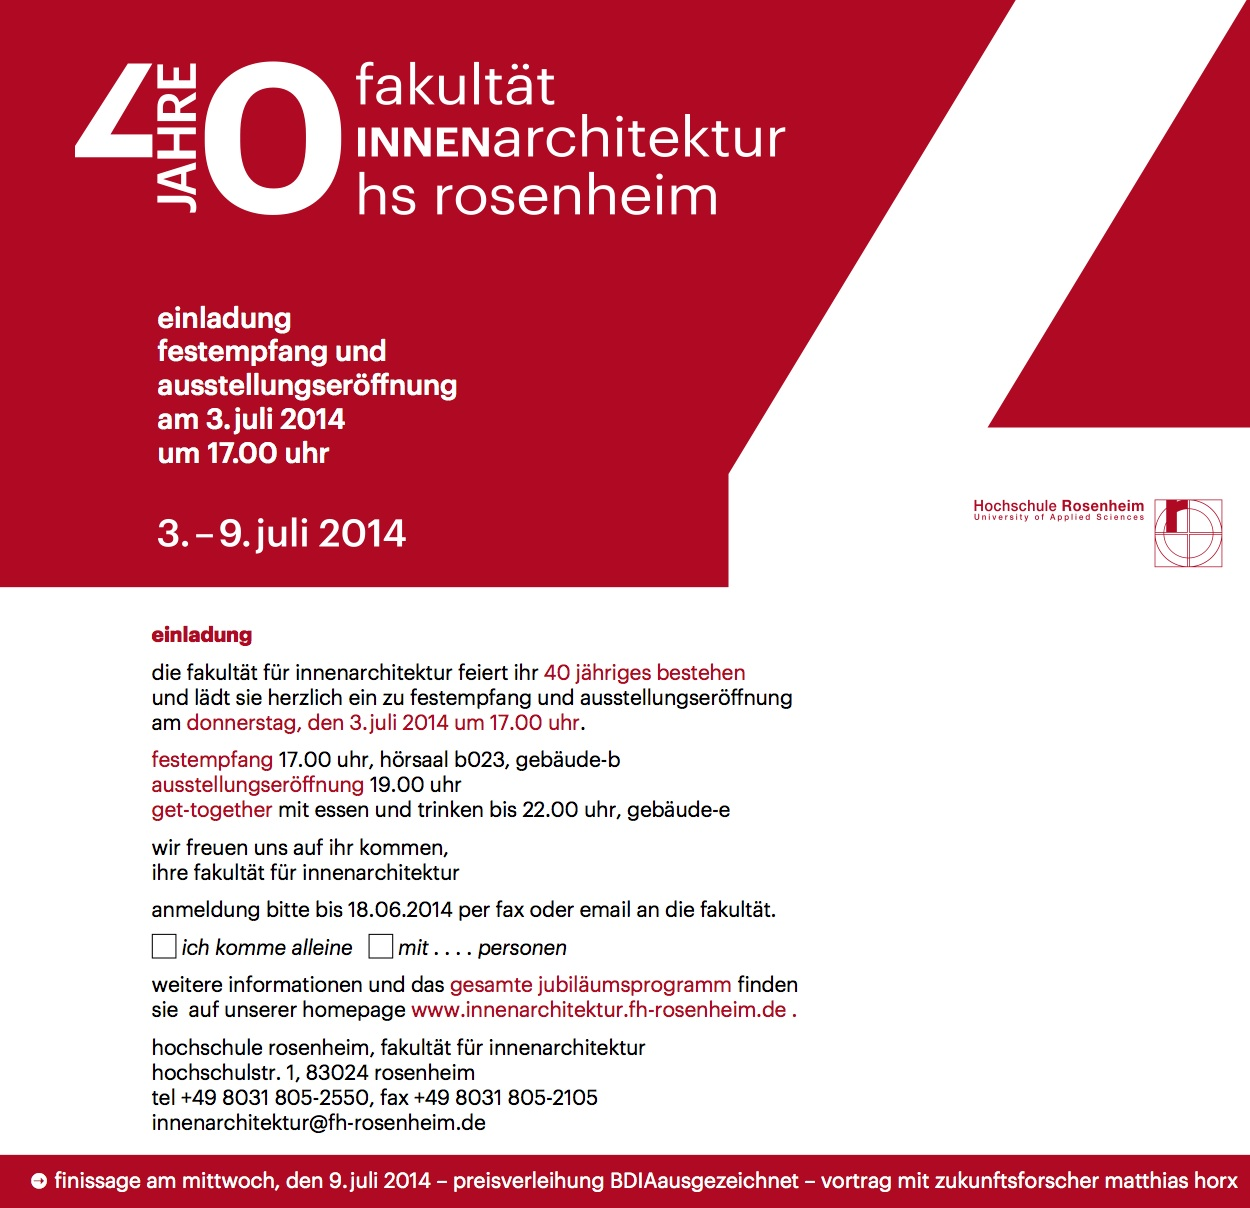 Innenarchitekten jahre innenarchitektur in for Innenarchitektur rosenheim